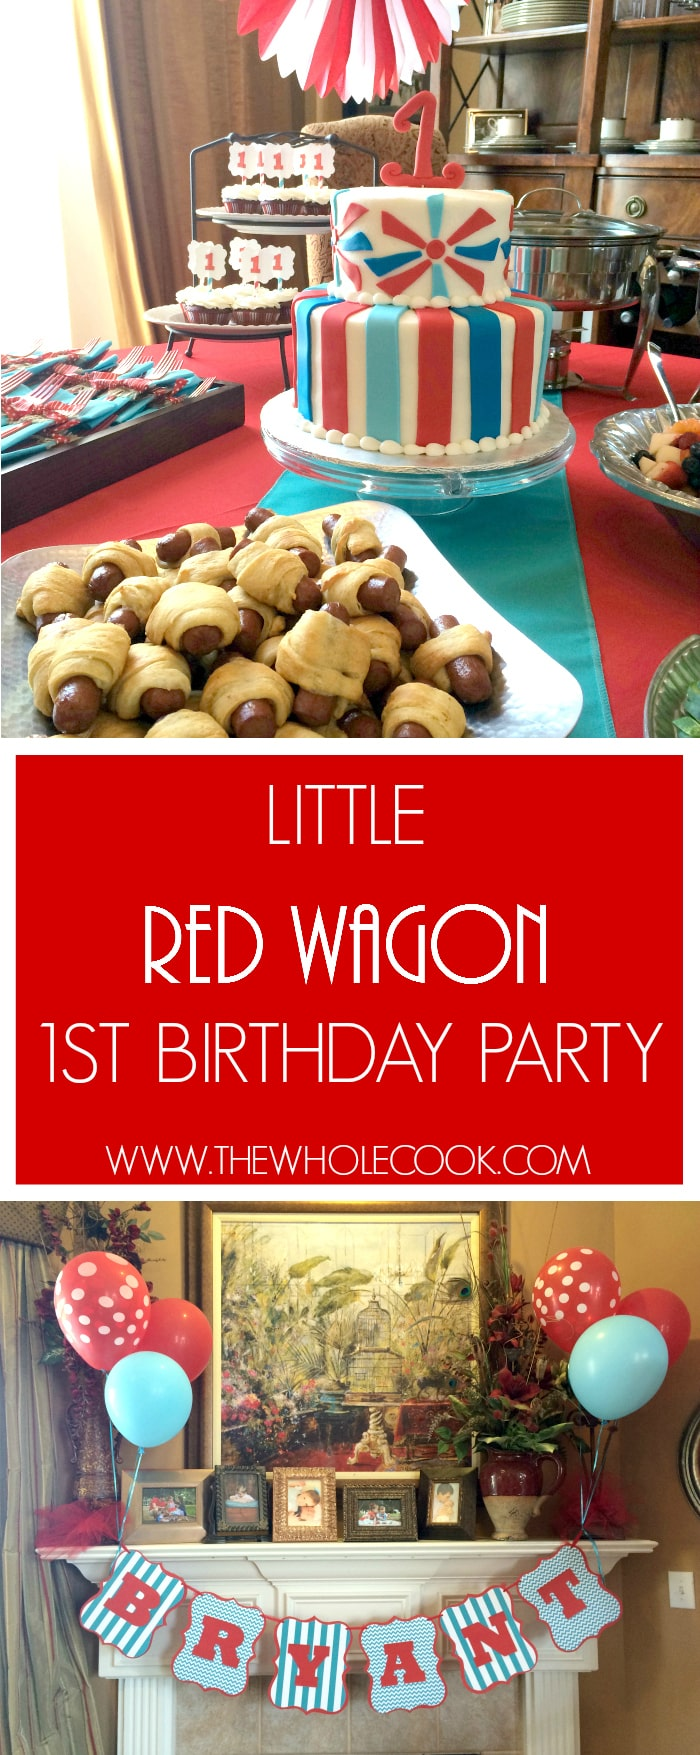 Little Red Wagon 1st Birthday Party